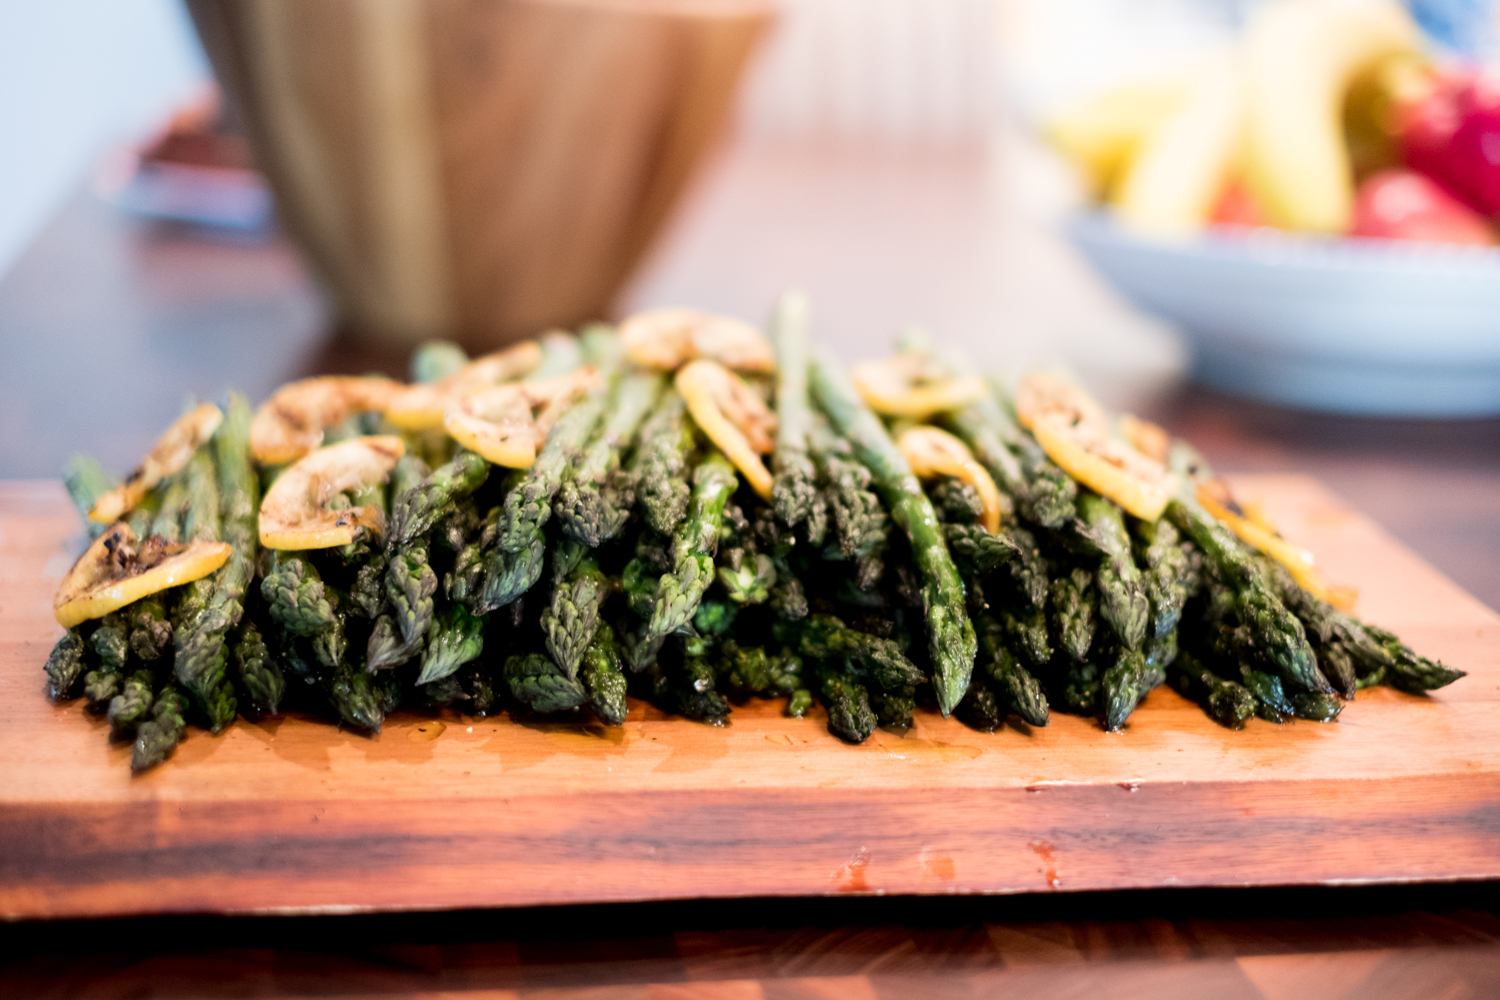 Chef-Traci-Roasted-Asparagus-With-Lemon.jpg